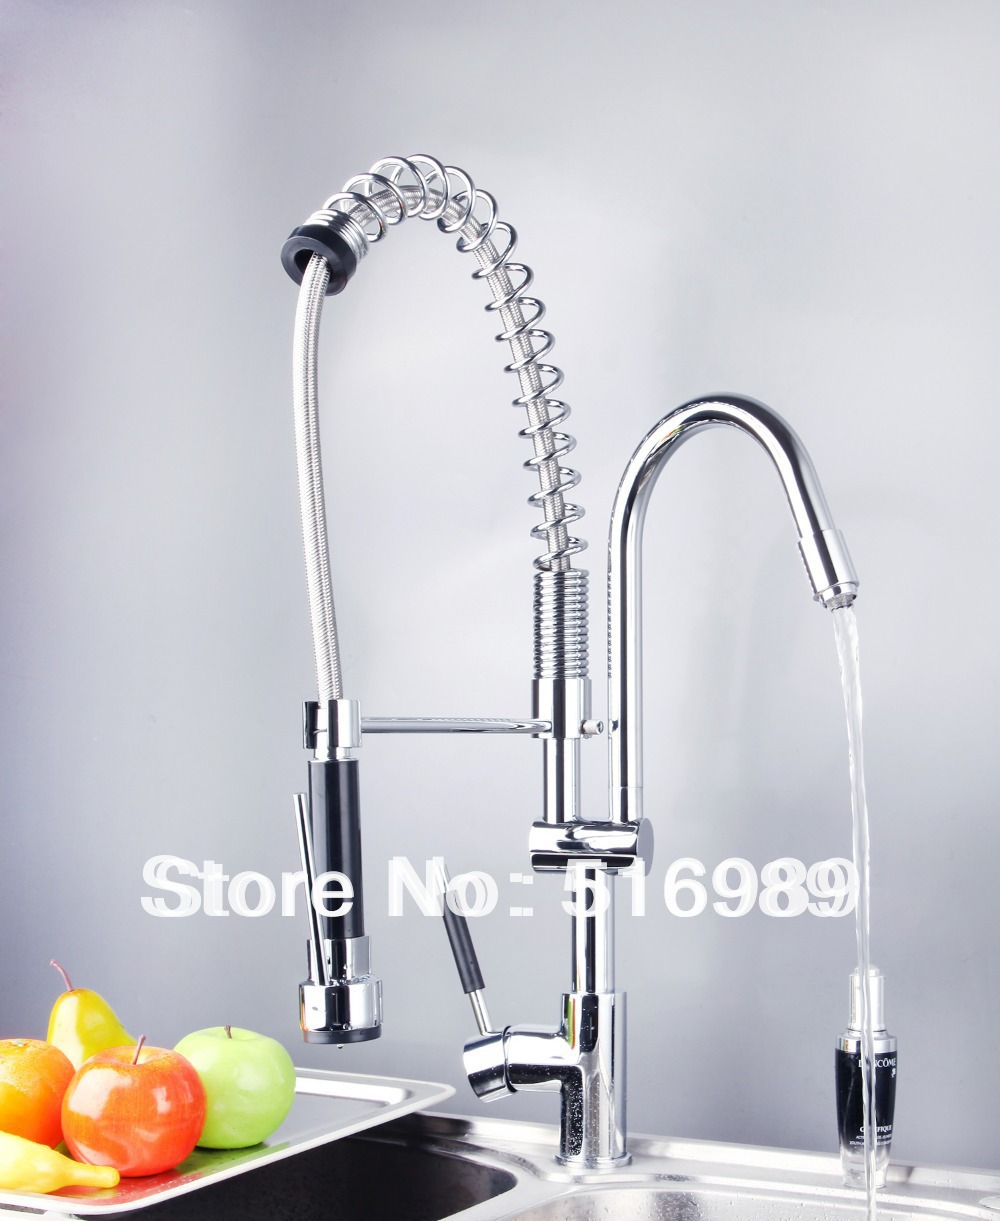 Free Shipping Basin Sink Vessel Mixer taps Chrome Two Spout Kitchen Faucets DS 8525 1